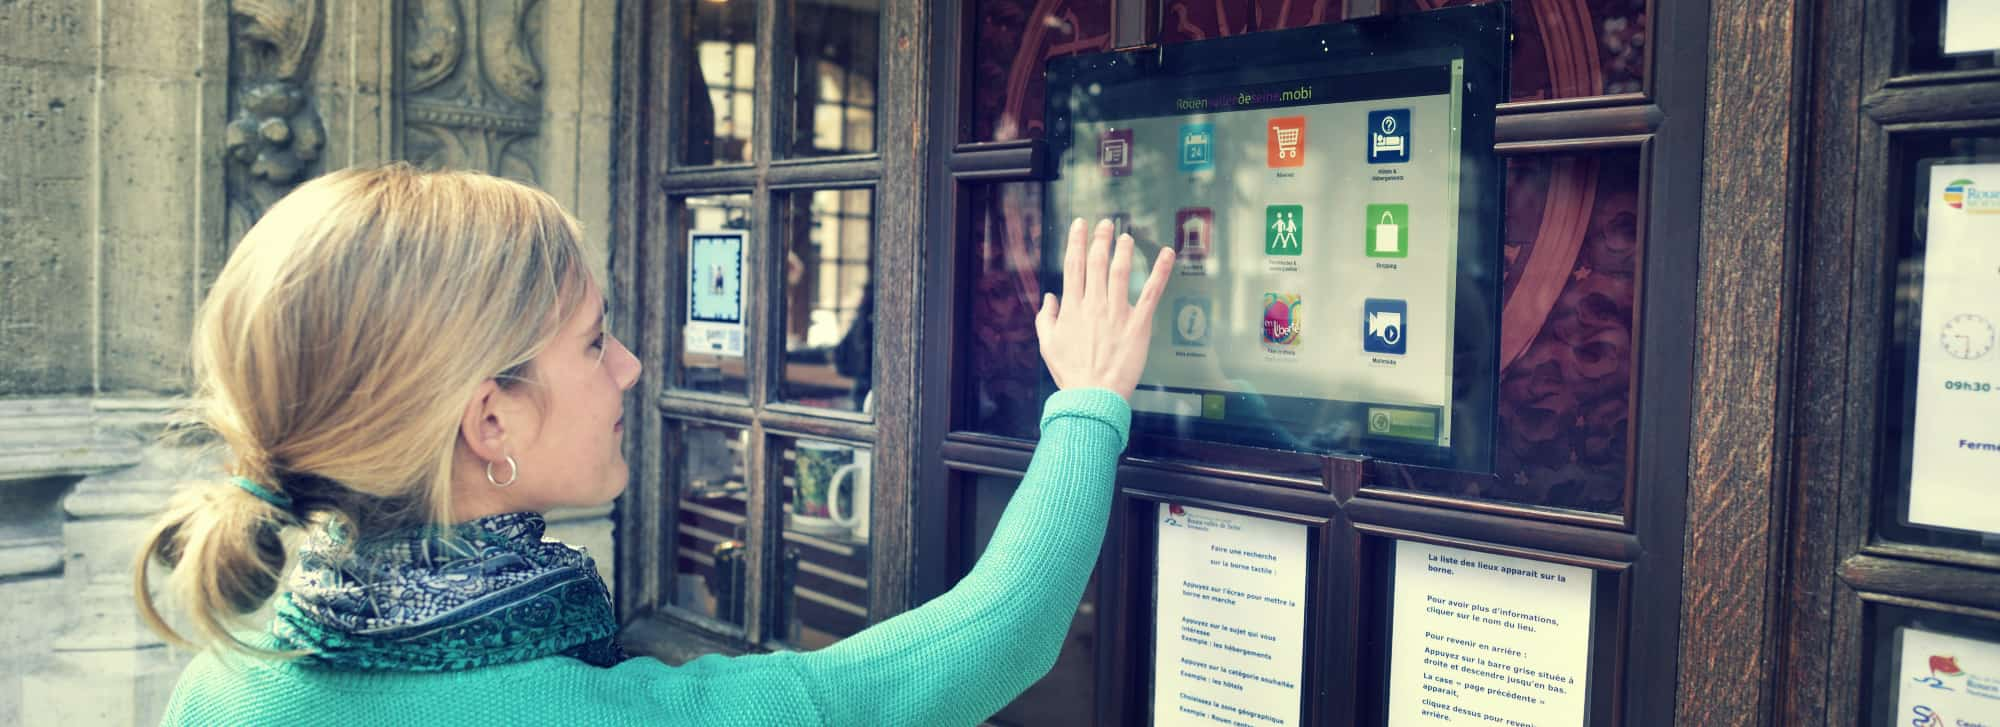 Touchscreen Terminals Borne tactile office de tourisme Rouen Normandie